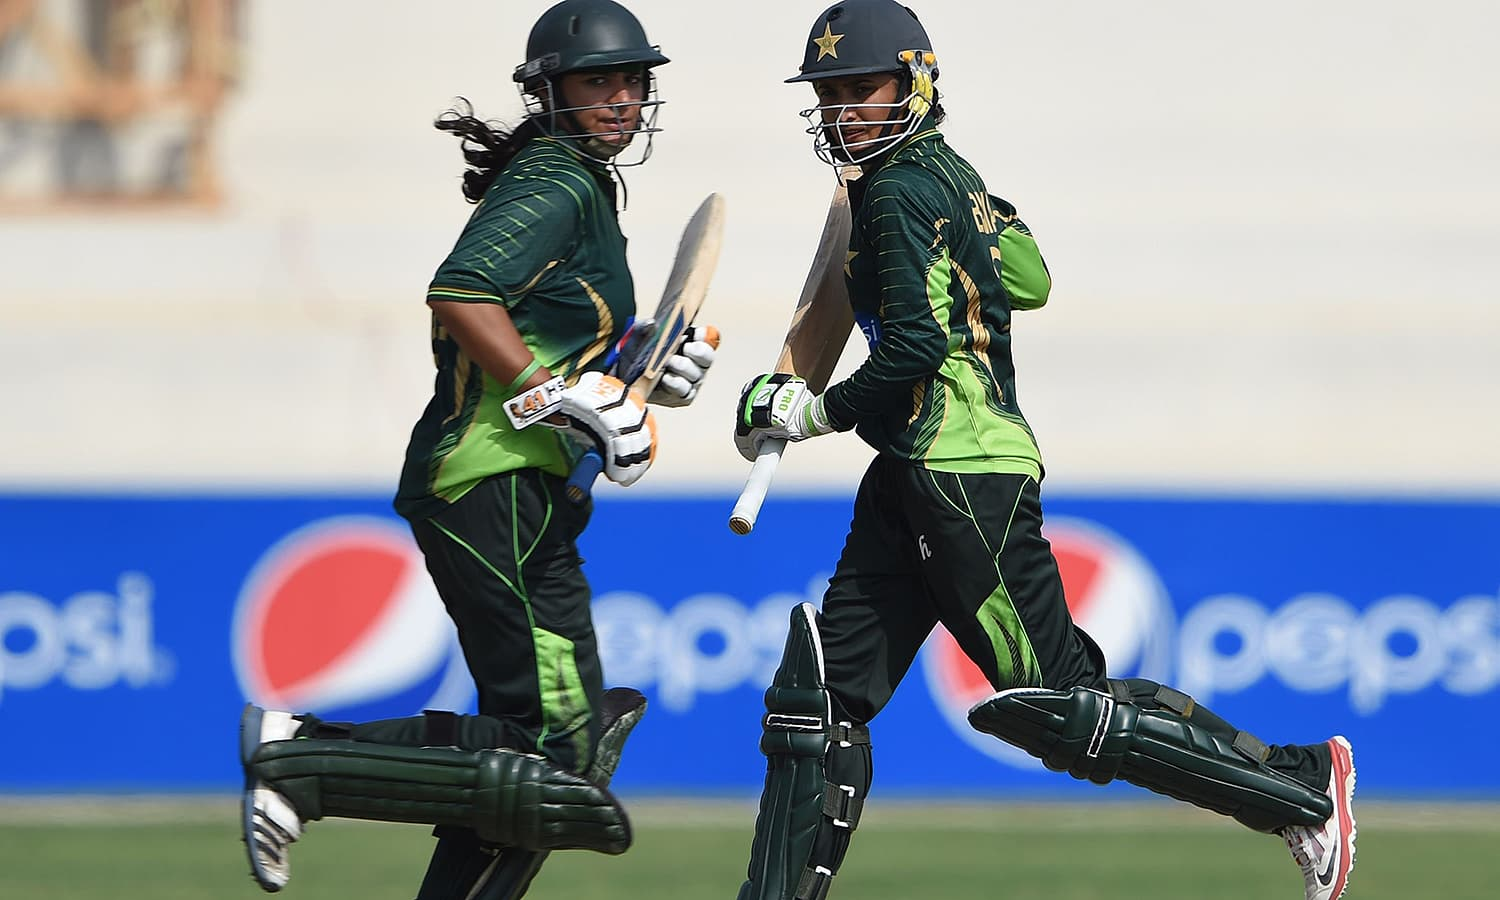 Bismah Mahroof (r) and Marina Iqbal (l) are pictured during their first wicket stand. — AFP